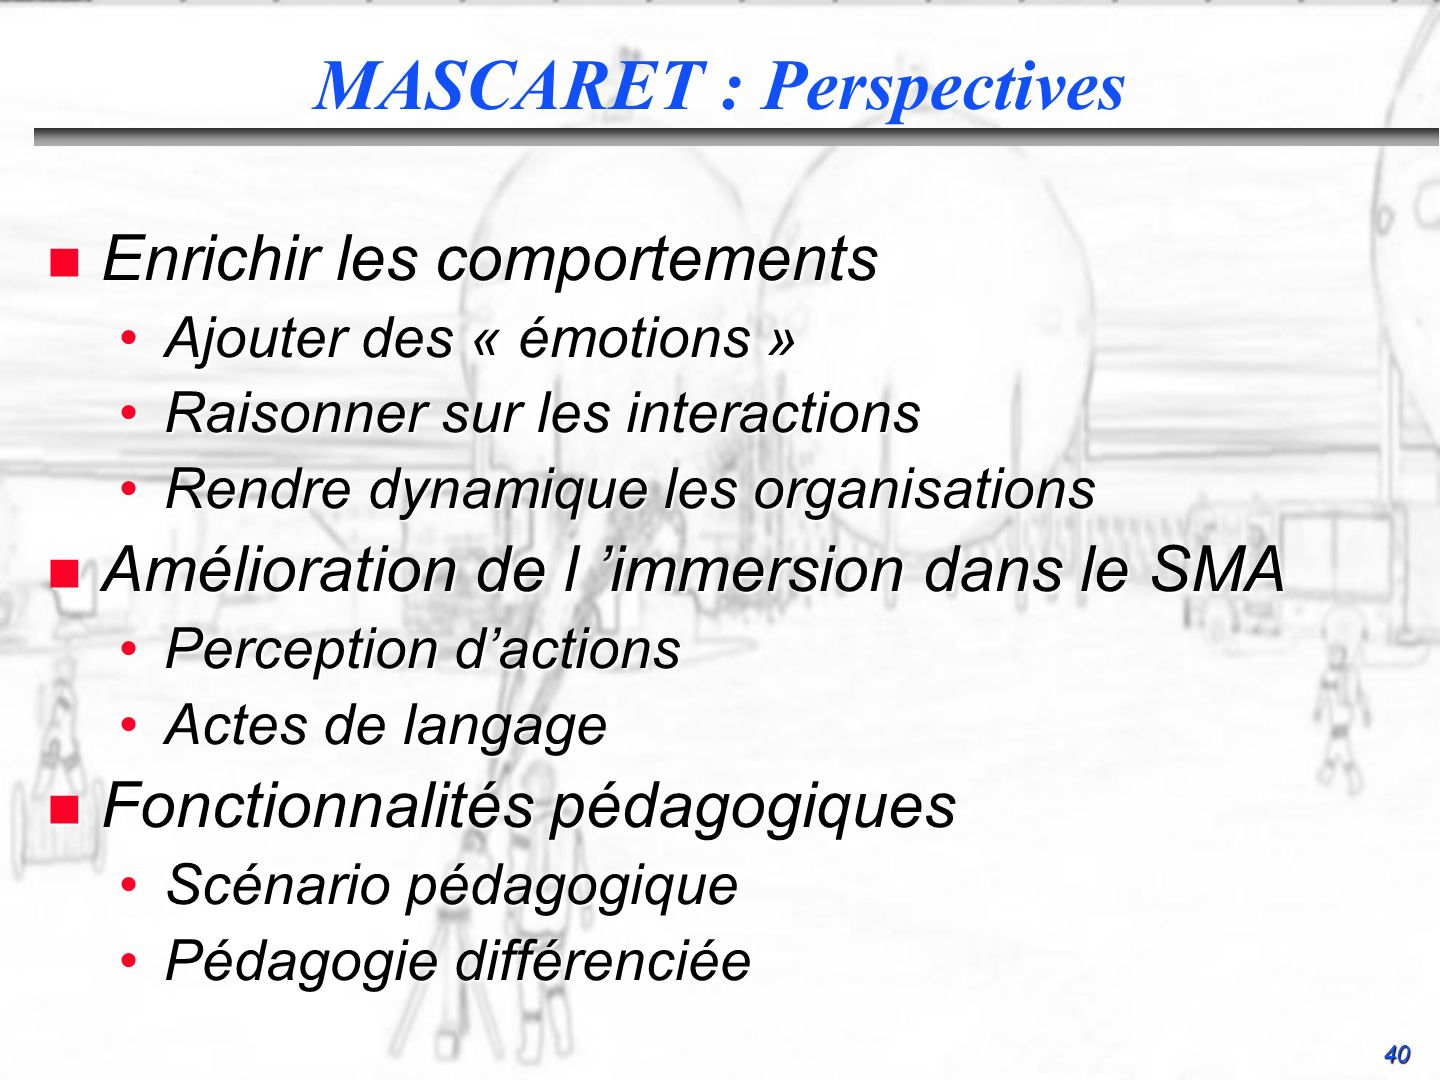 MASCARET : Perspectives